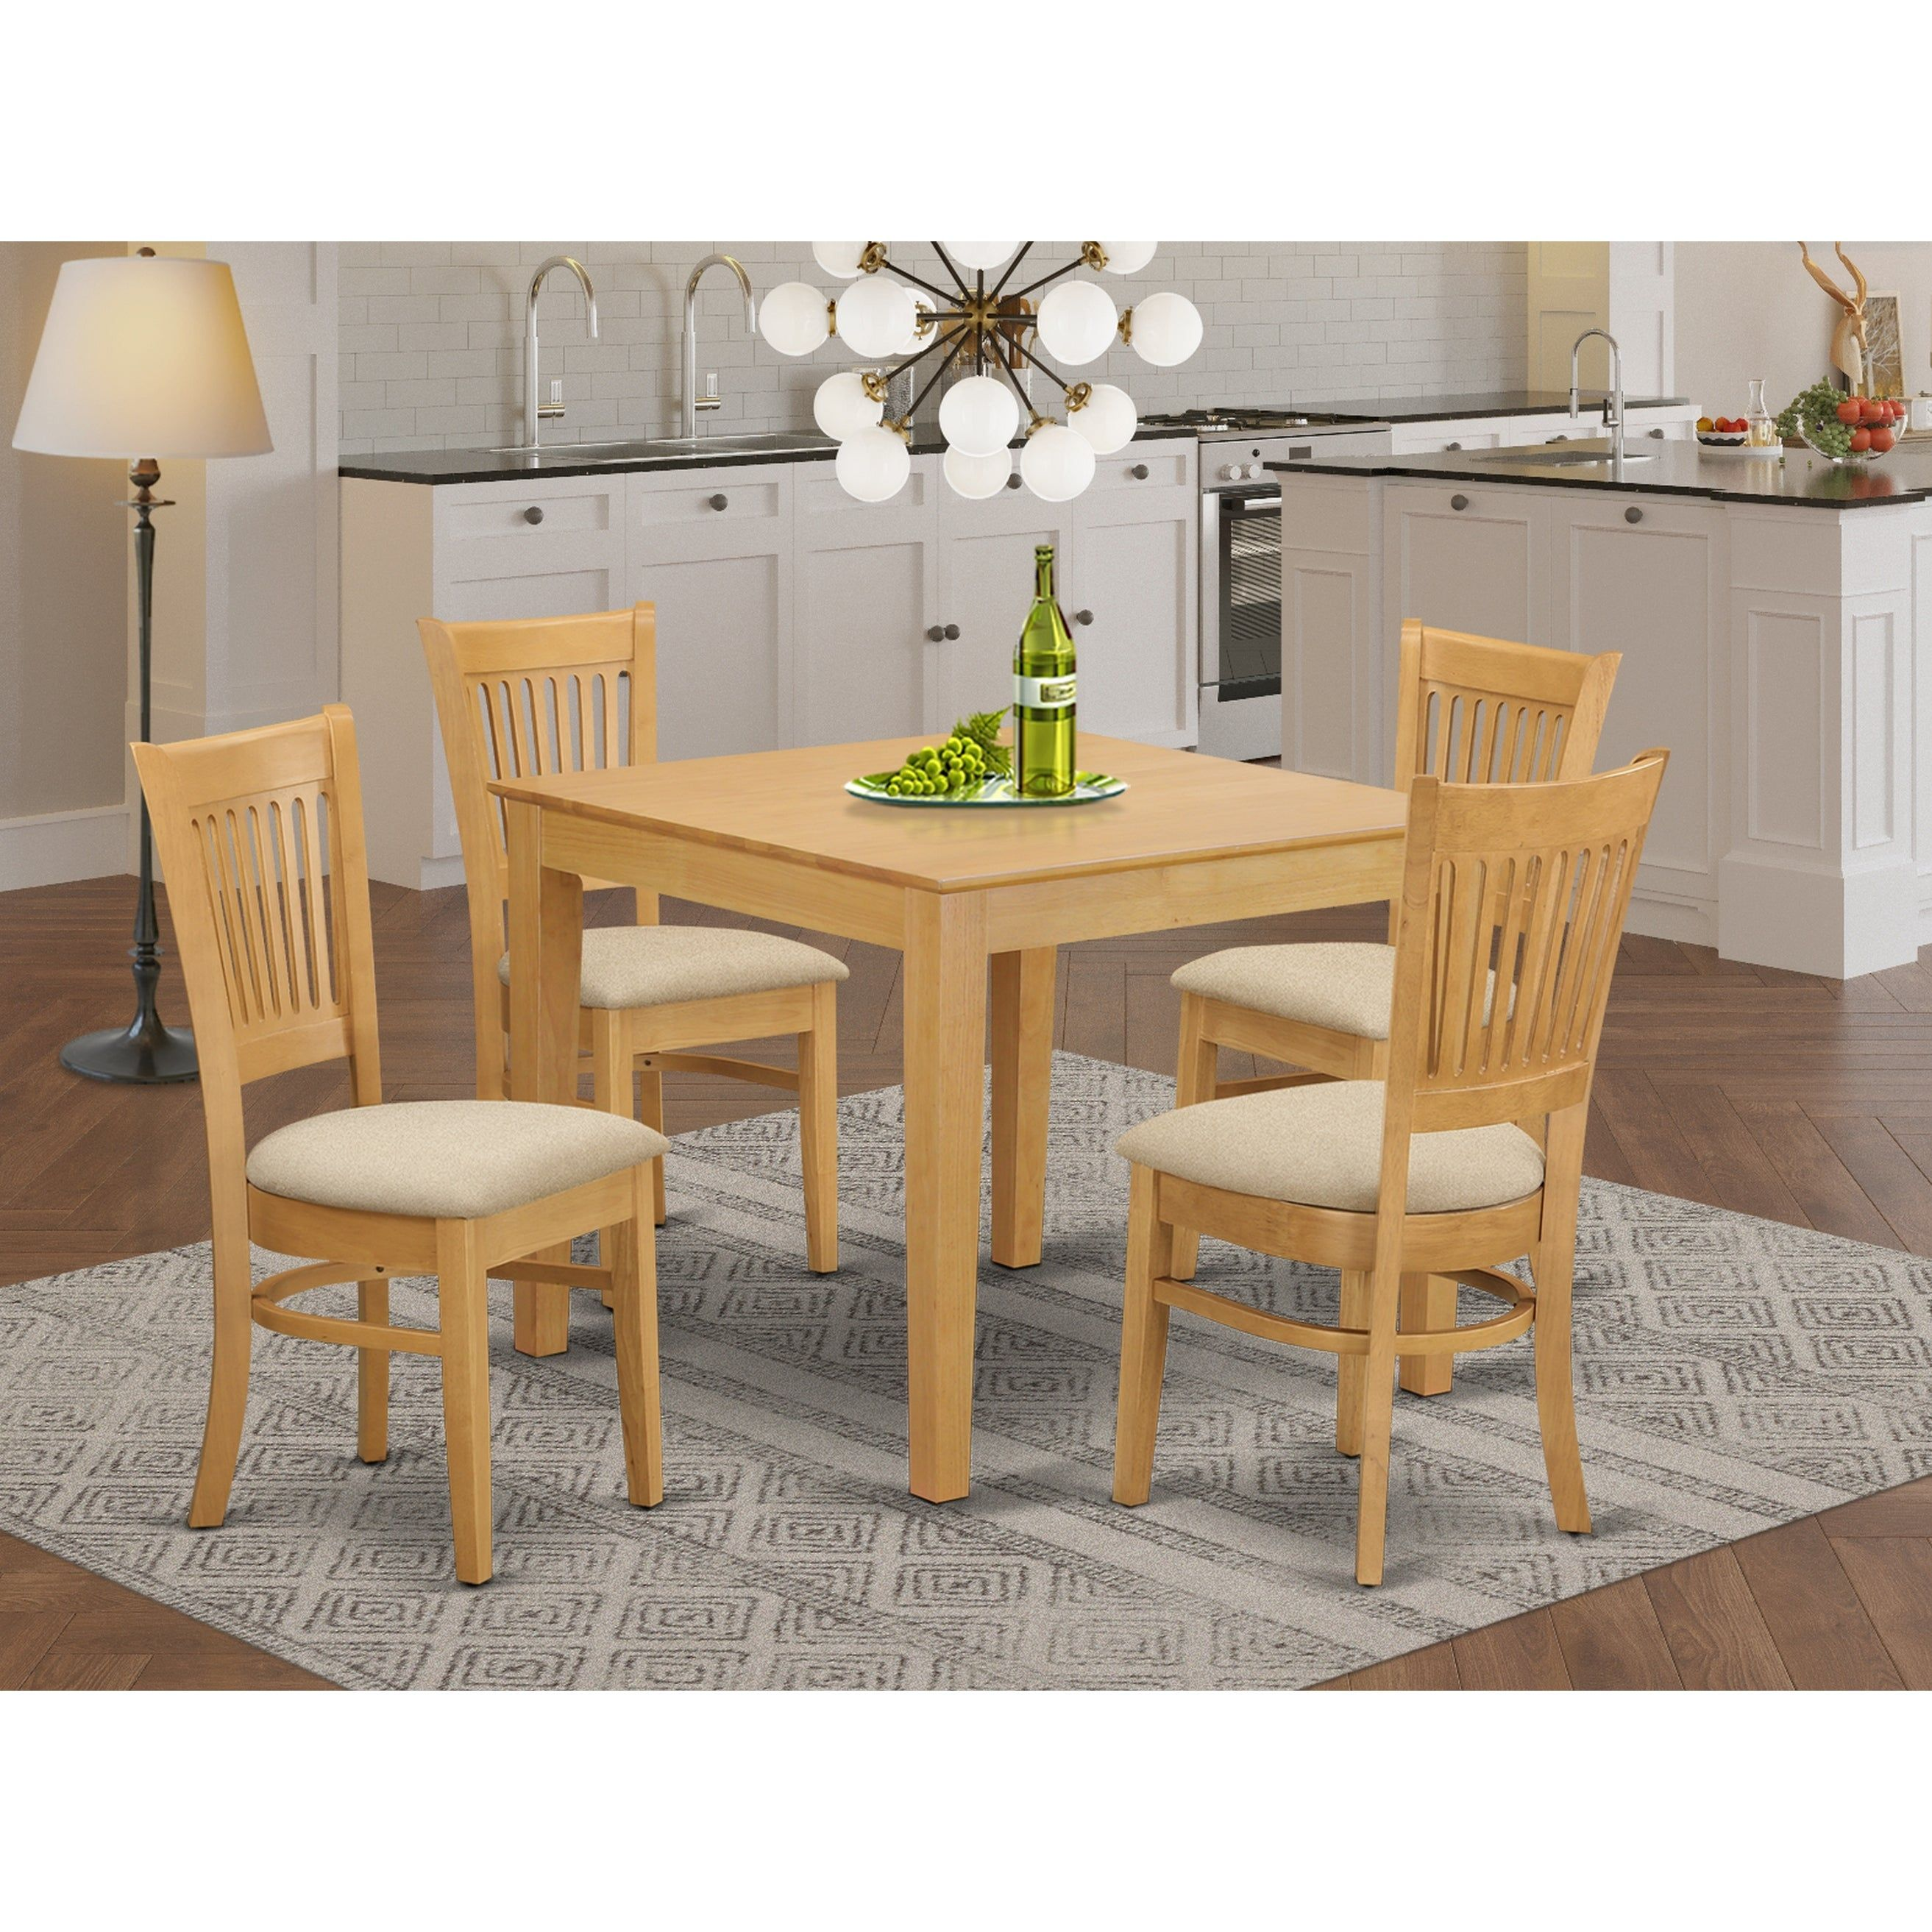 Wood Dining Set Includes a Square Kitchen Table and Linen Fabric Seat Chairs Set in Oak Finish Pieces Option